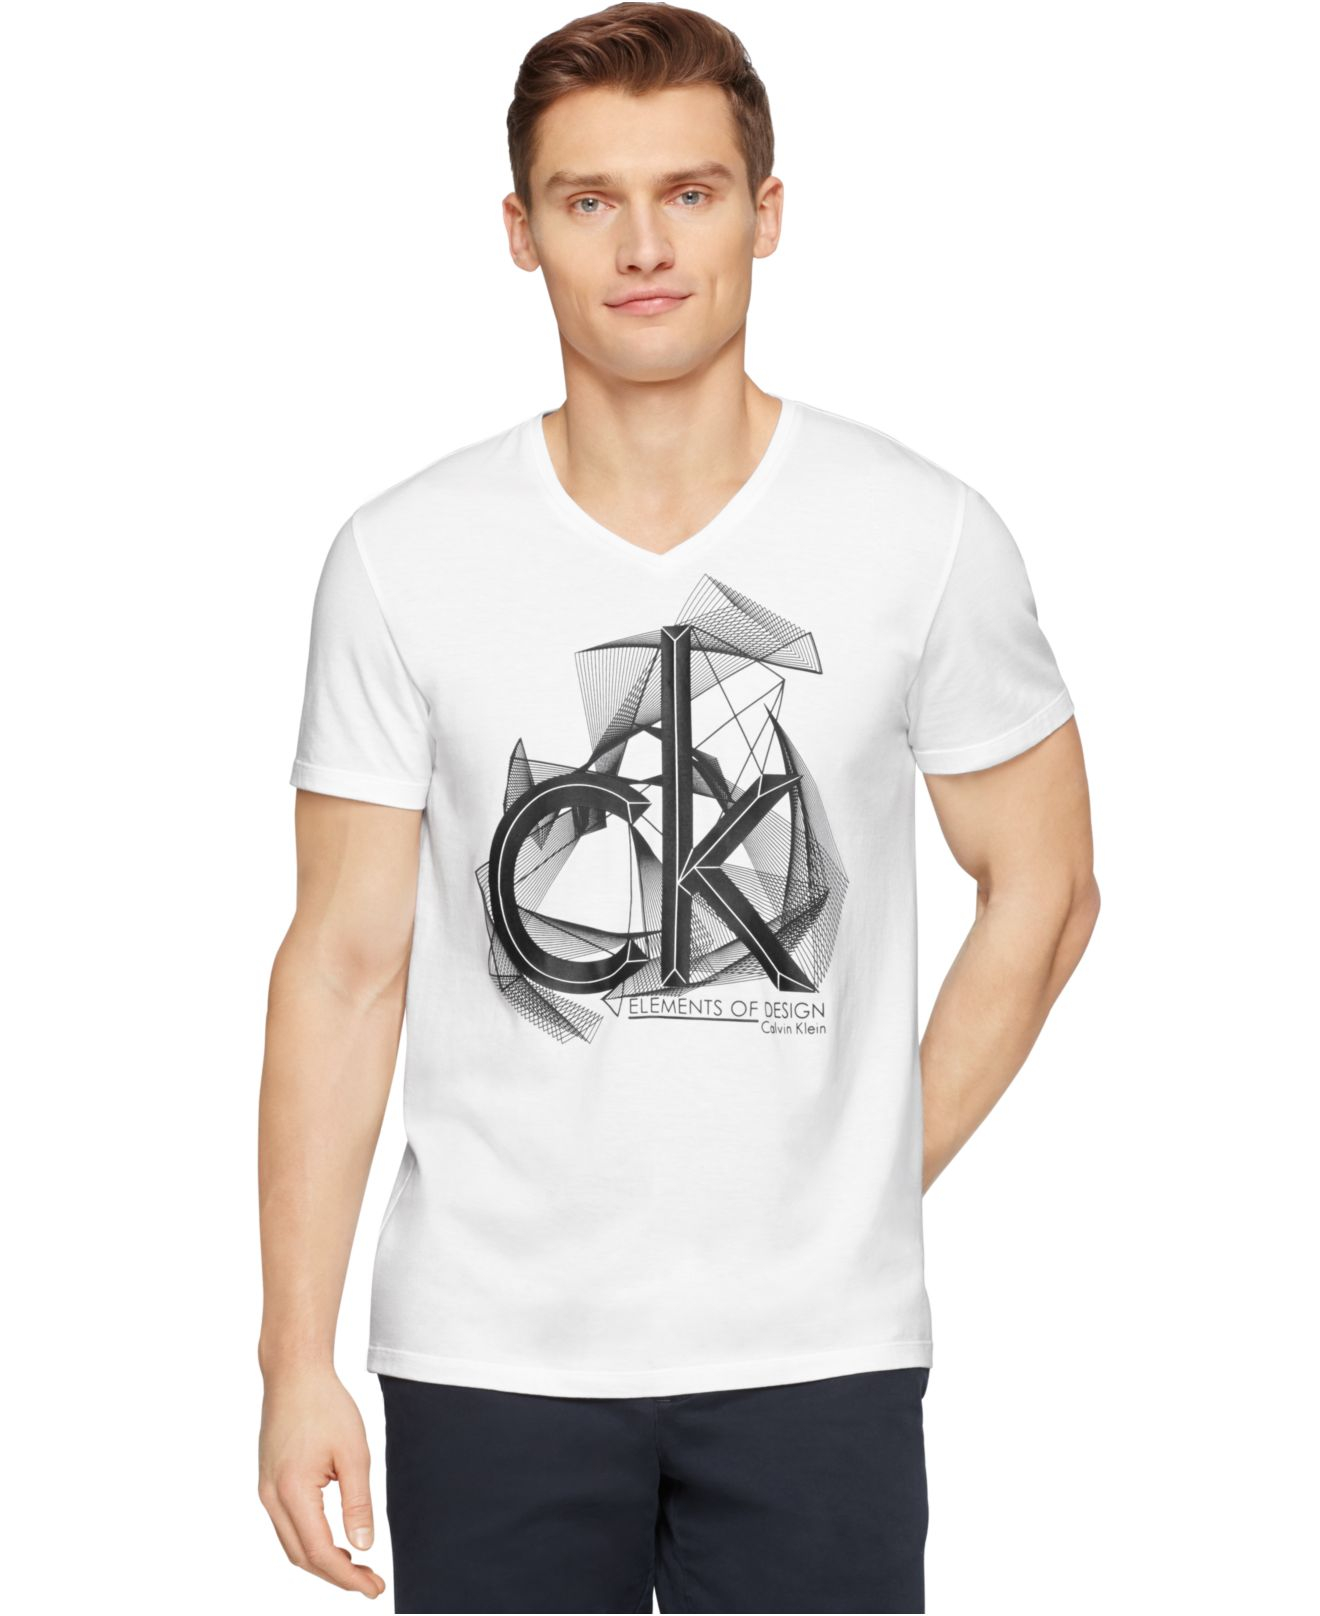 lyst calvin klein ck one logo graphic slim fit t shirt in white for men. Black Bedroom Furniture Sets. Home Design Ideas